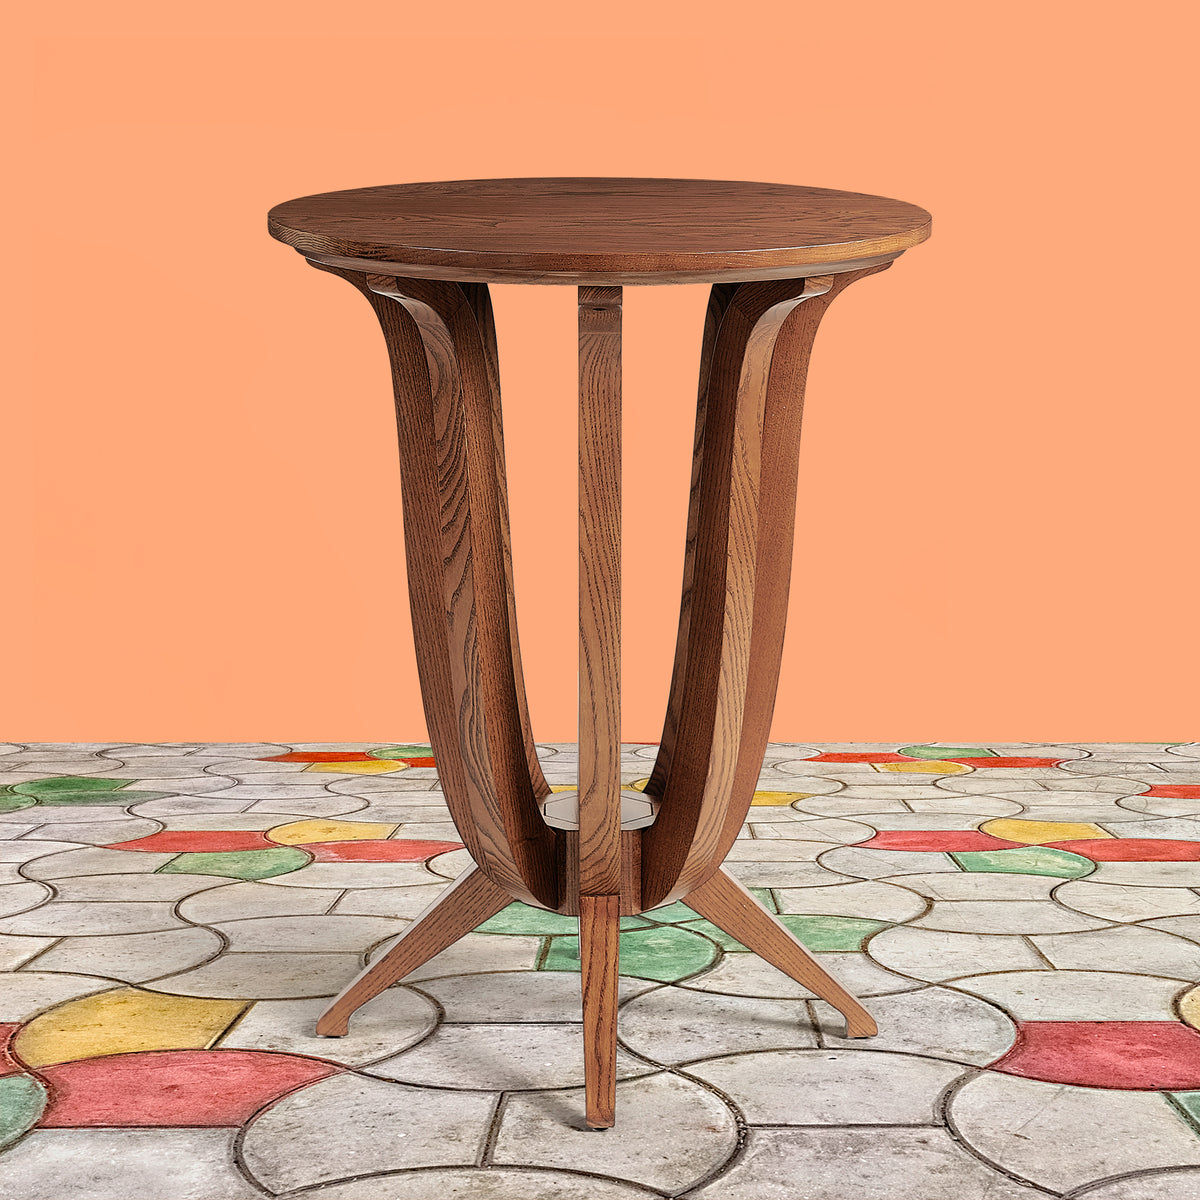 Imperial Deco solid Ash wood End Table - Cinnamon Ash